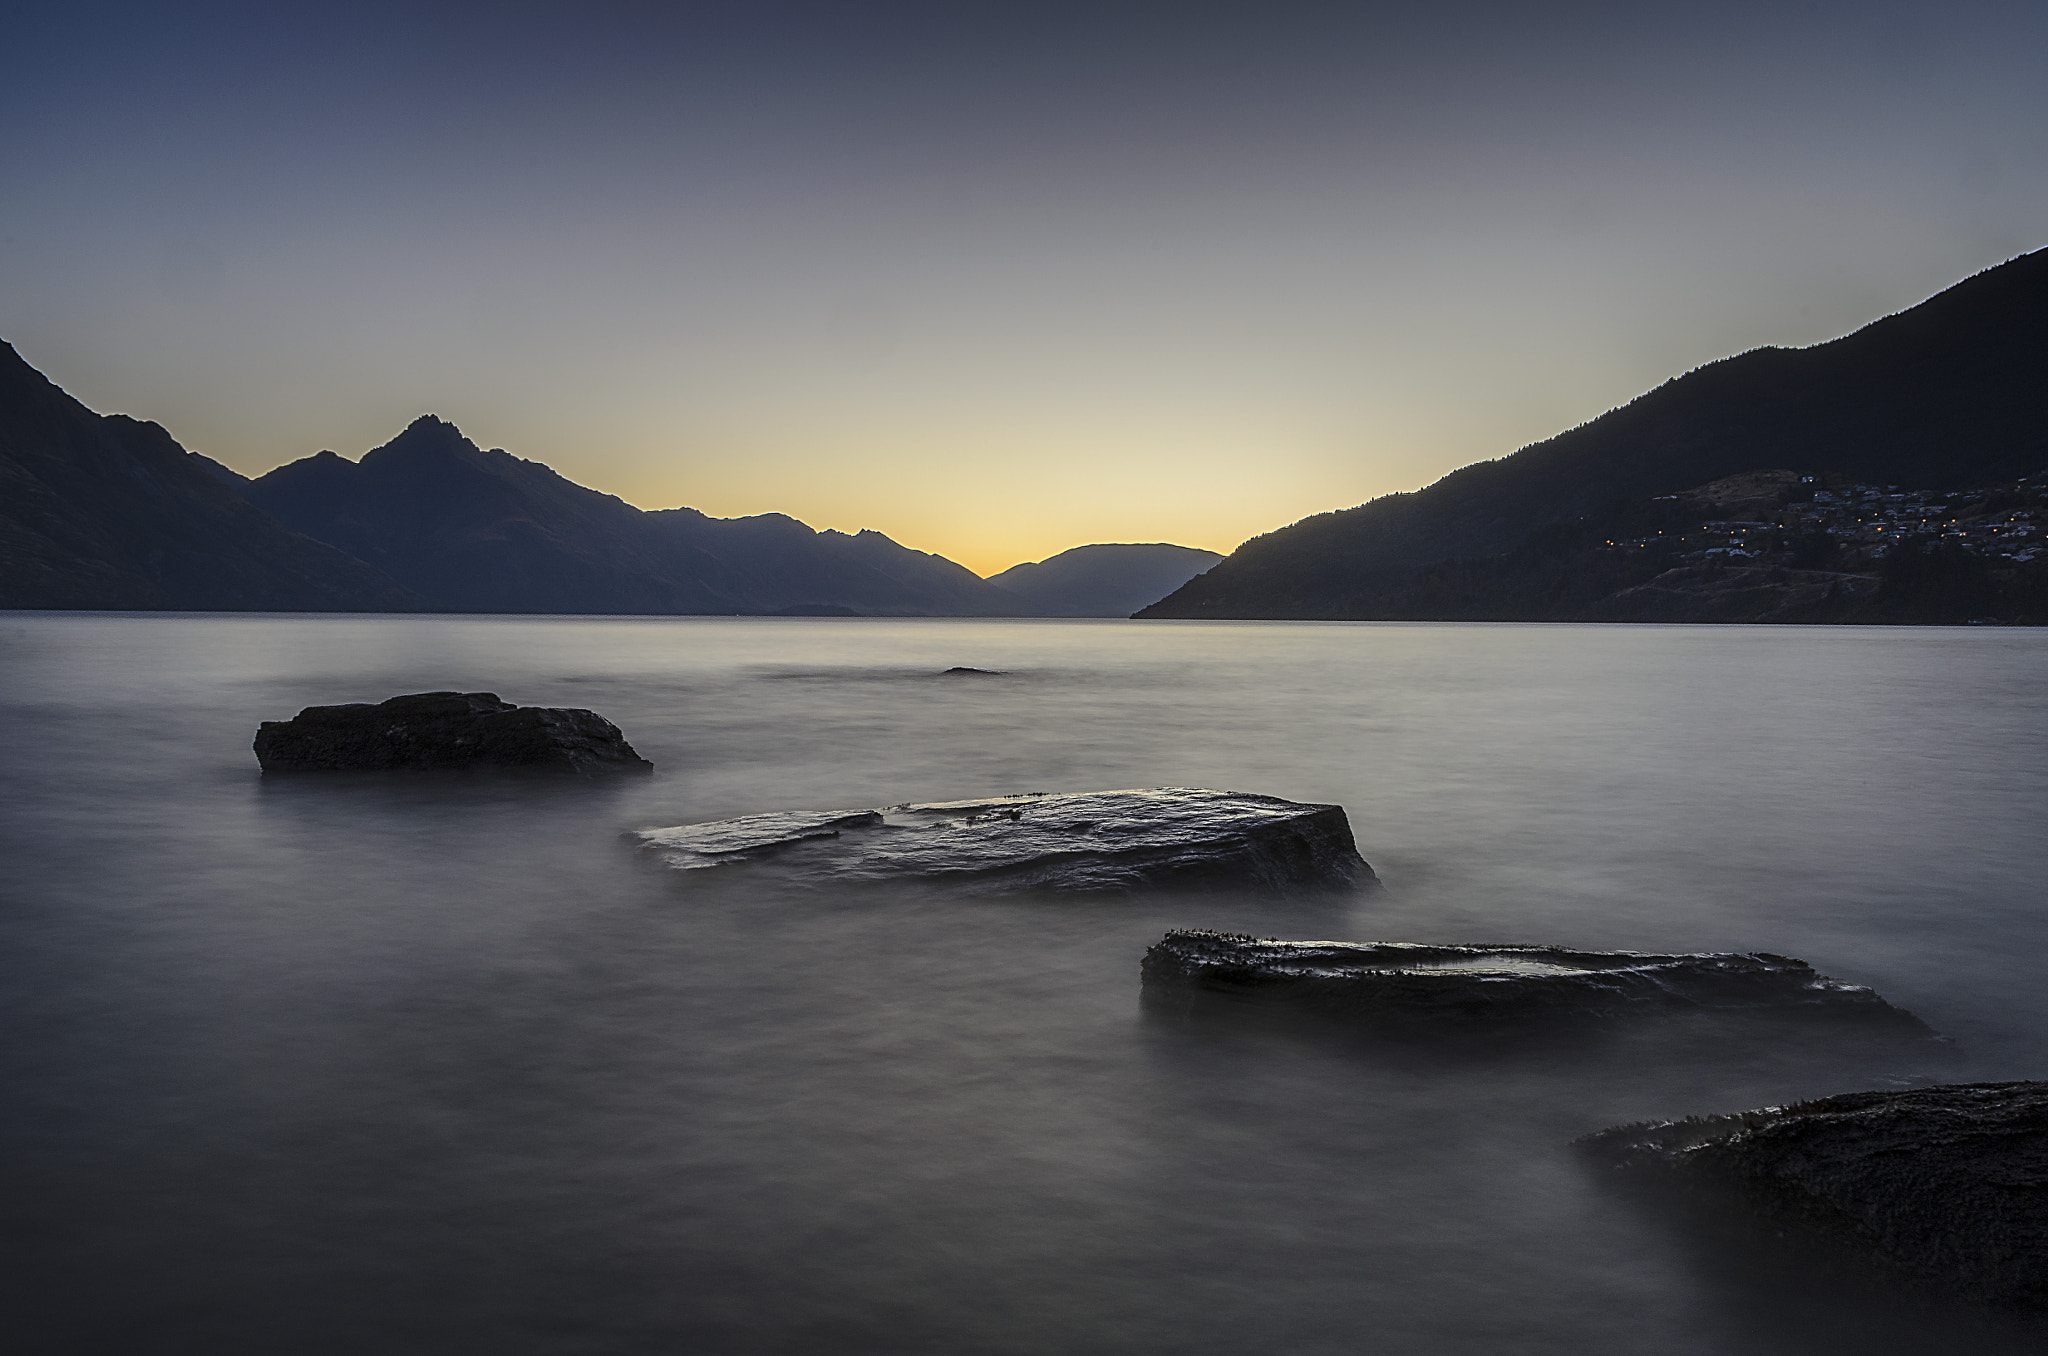 Photograph Queenstown rocks by Martijn Barendregt on 500px